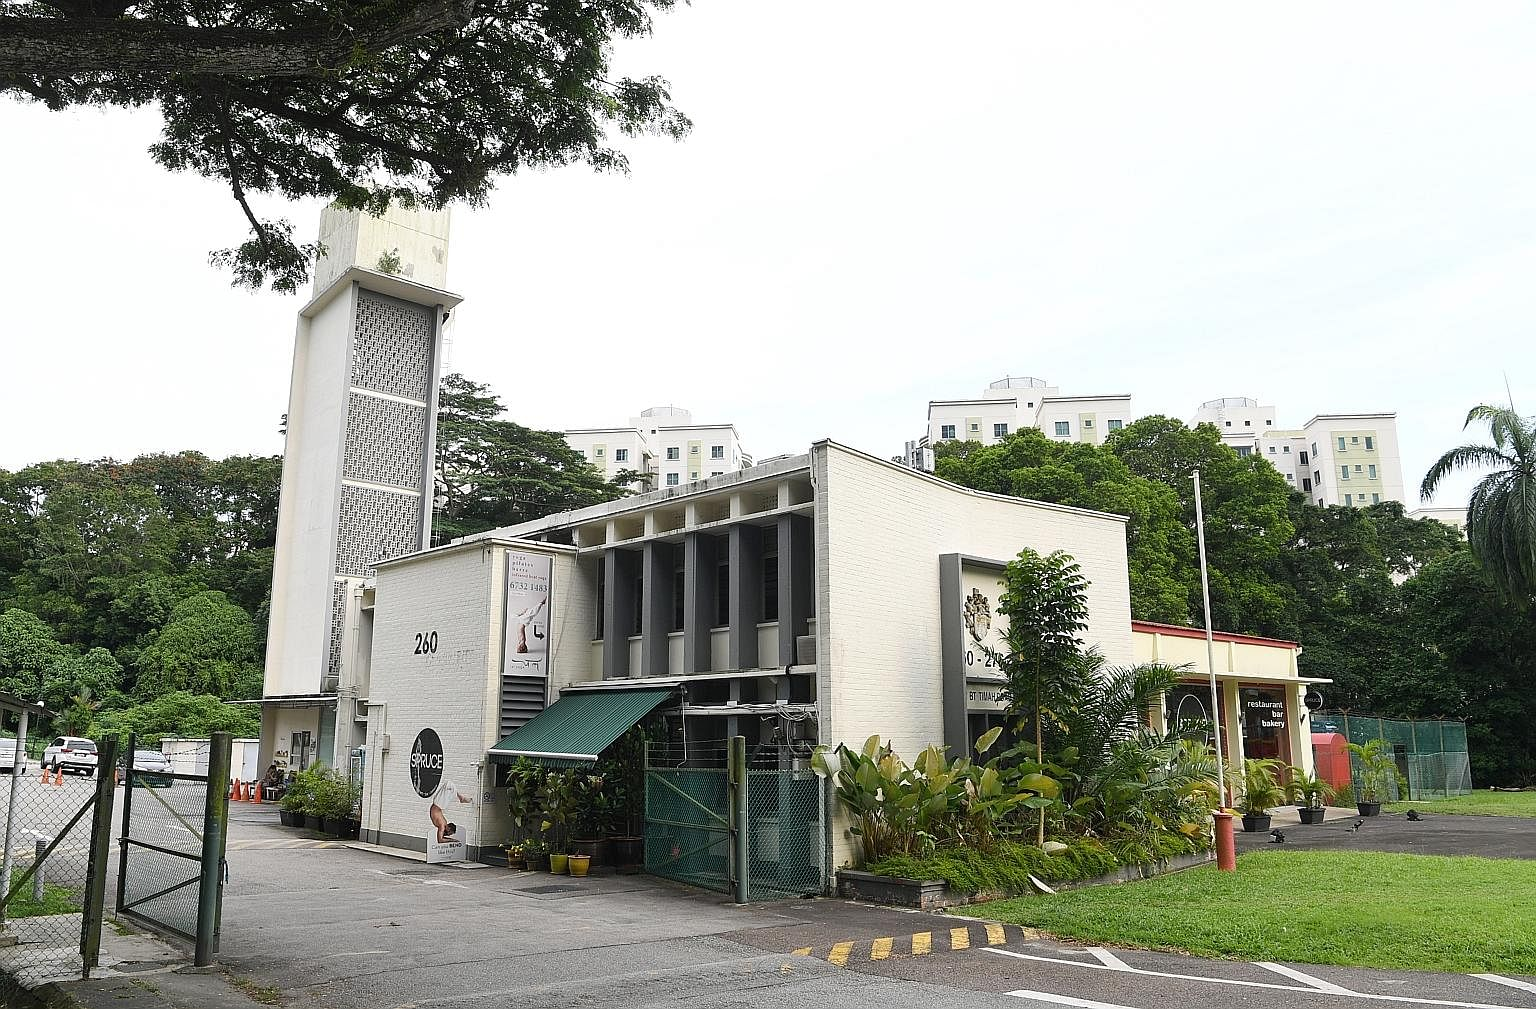 The former Bukit Timah Fire Station (above) and former Railway Station Staff Quarters (right) have been gazetted for conservation, said the Urban Redevelopment Authority (URA) yesterday. The conservation gazettes are part of the 2019 URA masterplan w